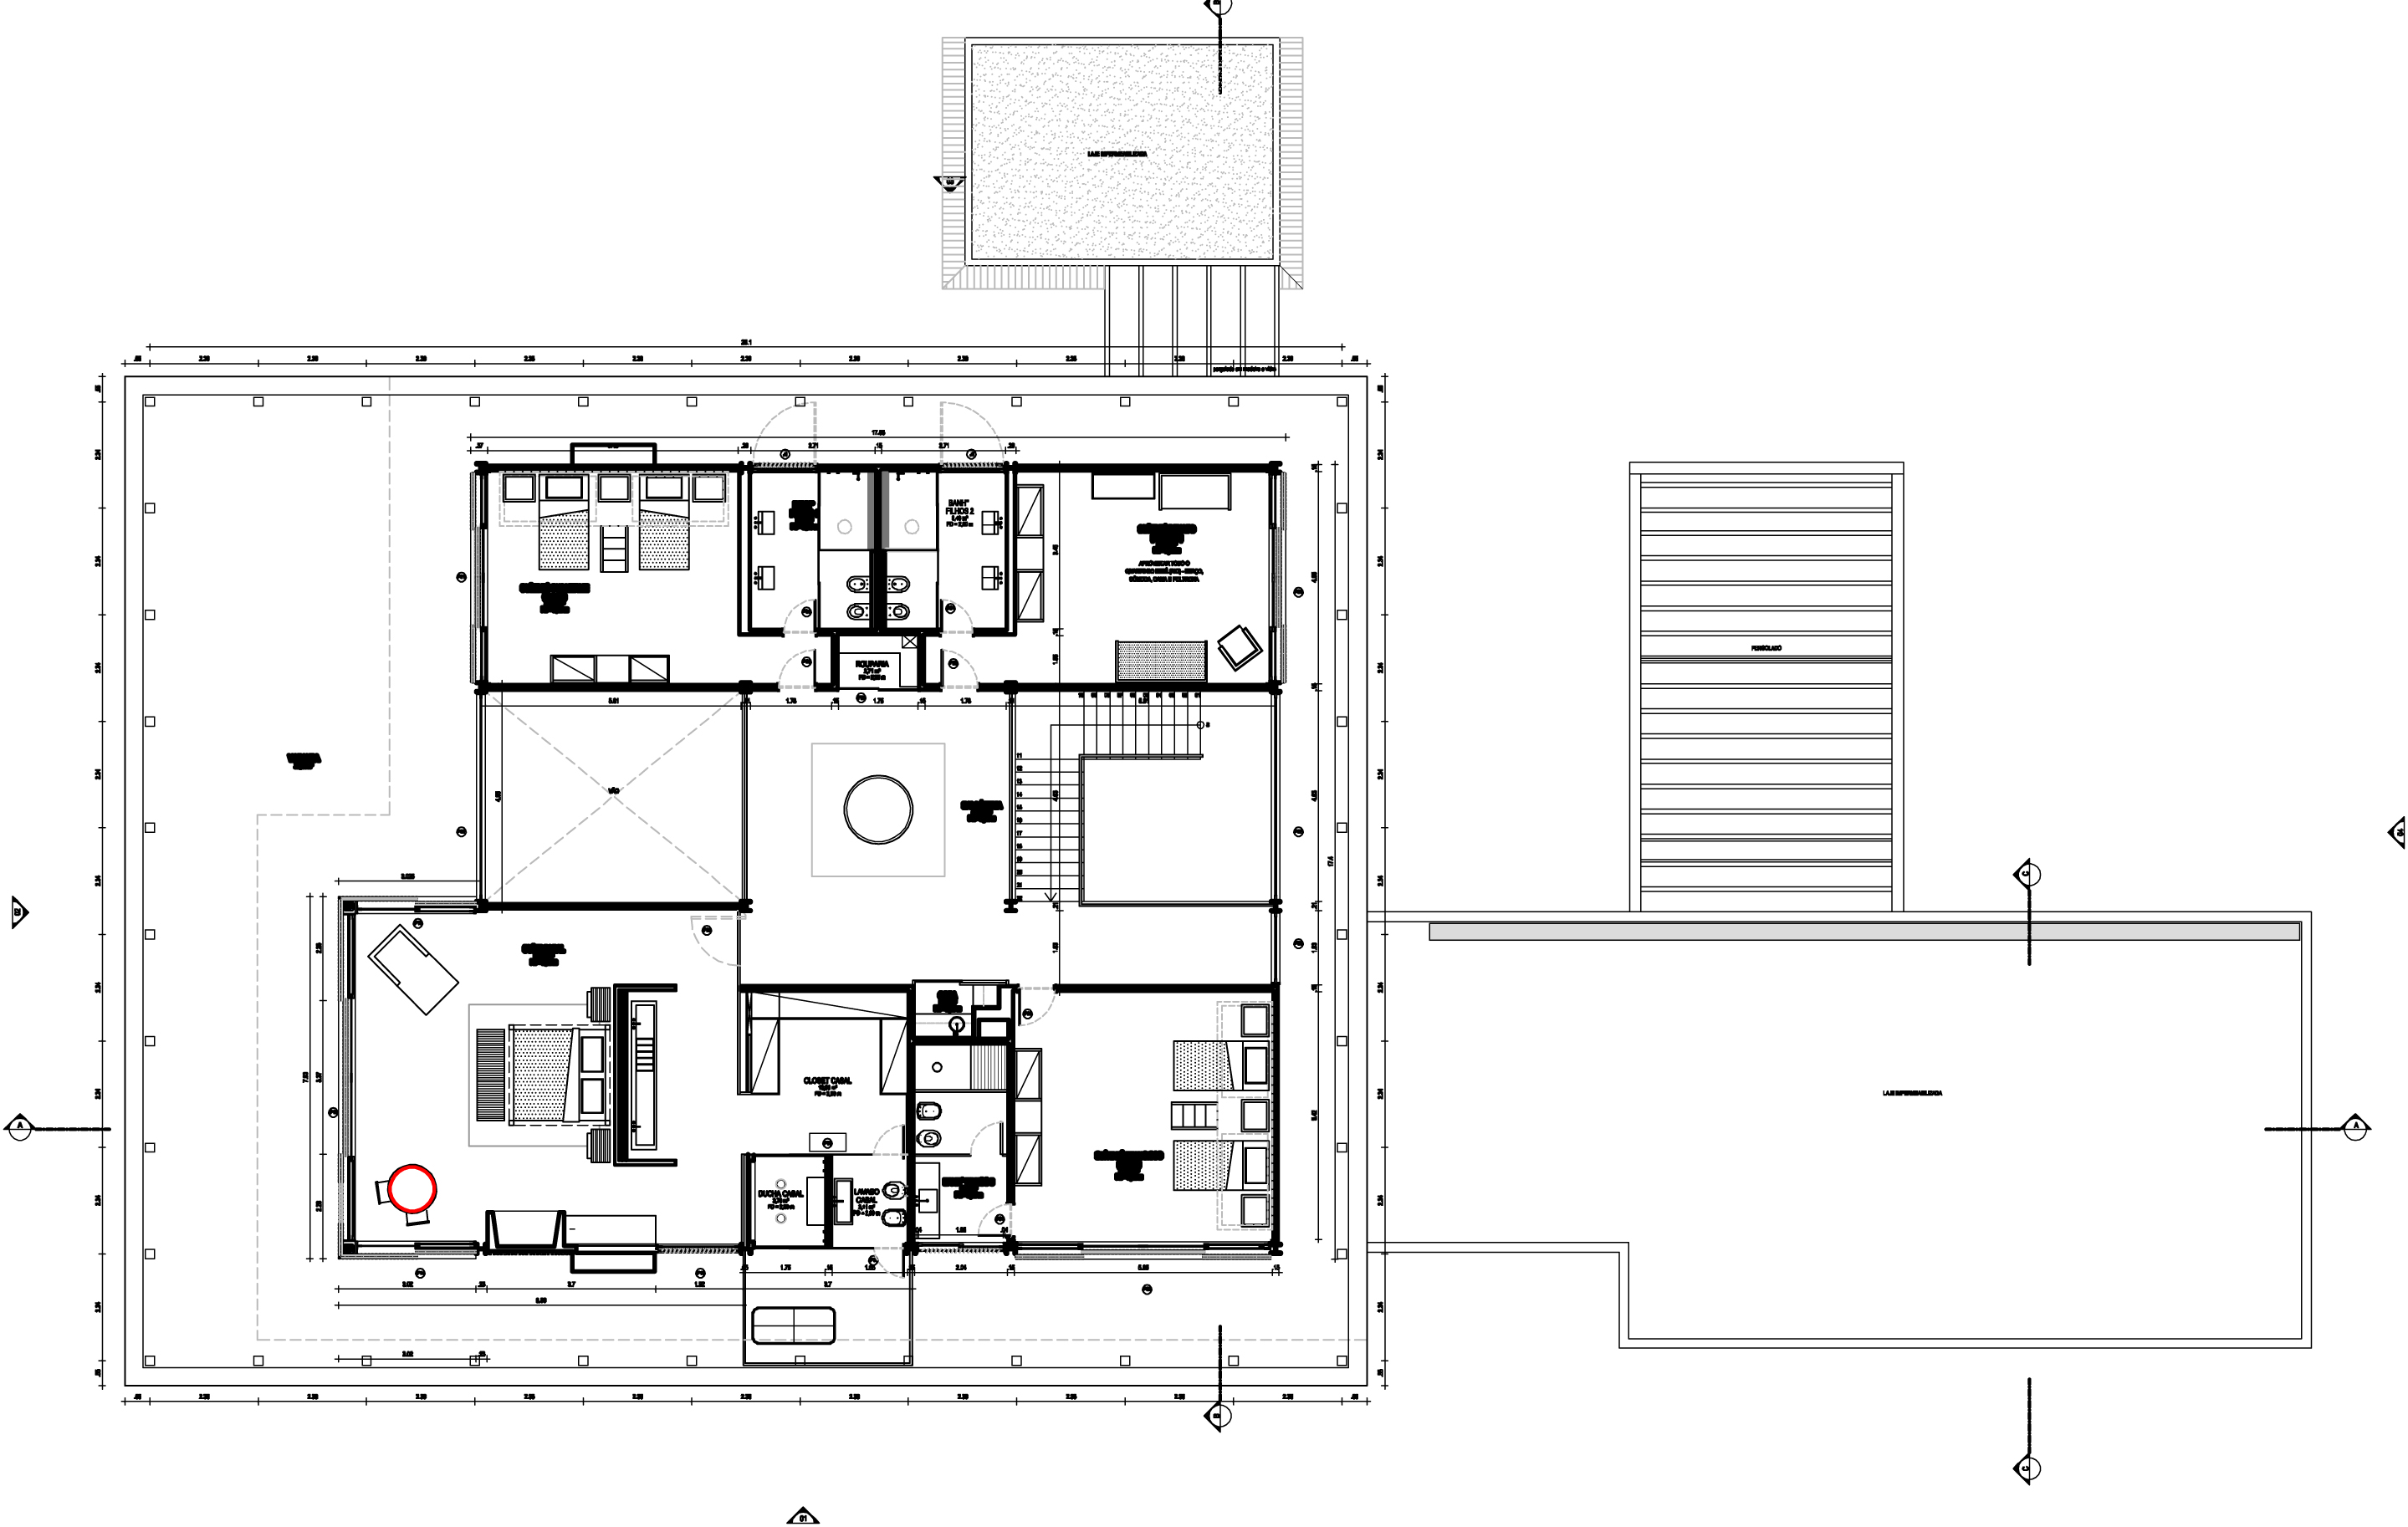 Modern Brick Ranch House Plans together with 164944405072347683 together with Lcd Interior Wall Units Bedroom Tv Wall Unit Designs Lcd Wall Panel Designs Bedroom in addition Amenities besides samteoh. on modern house design